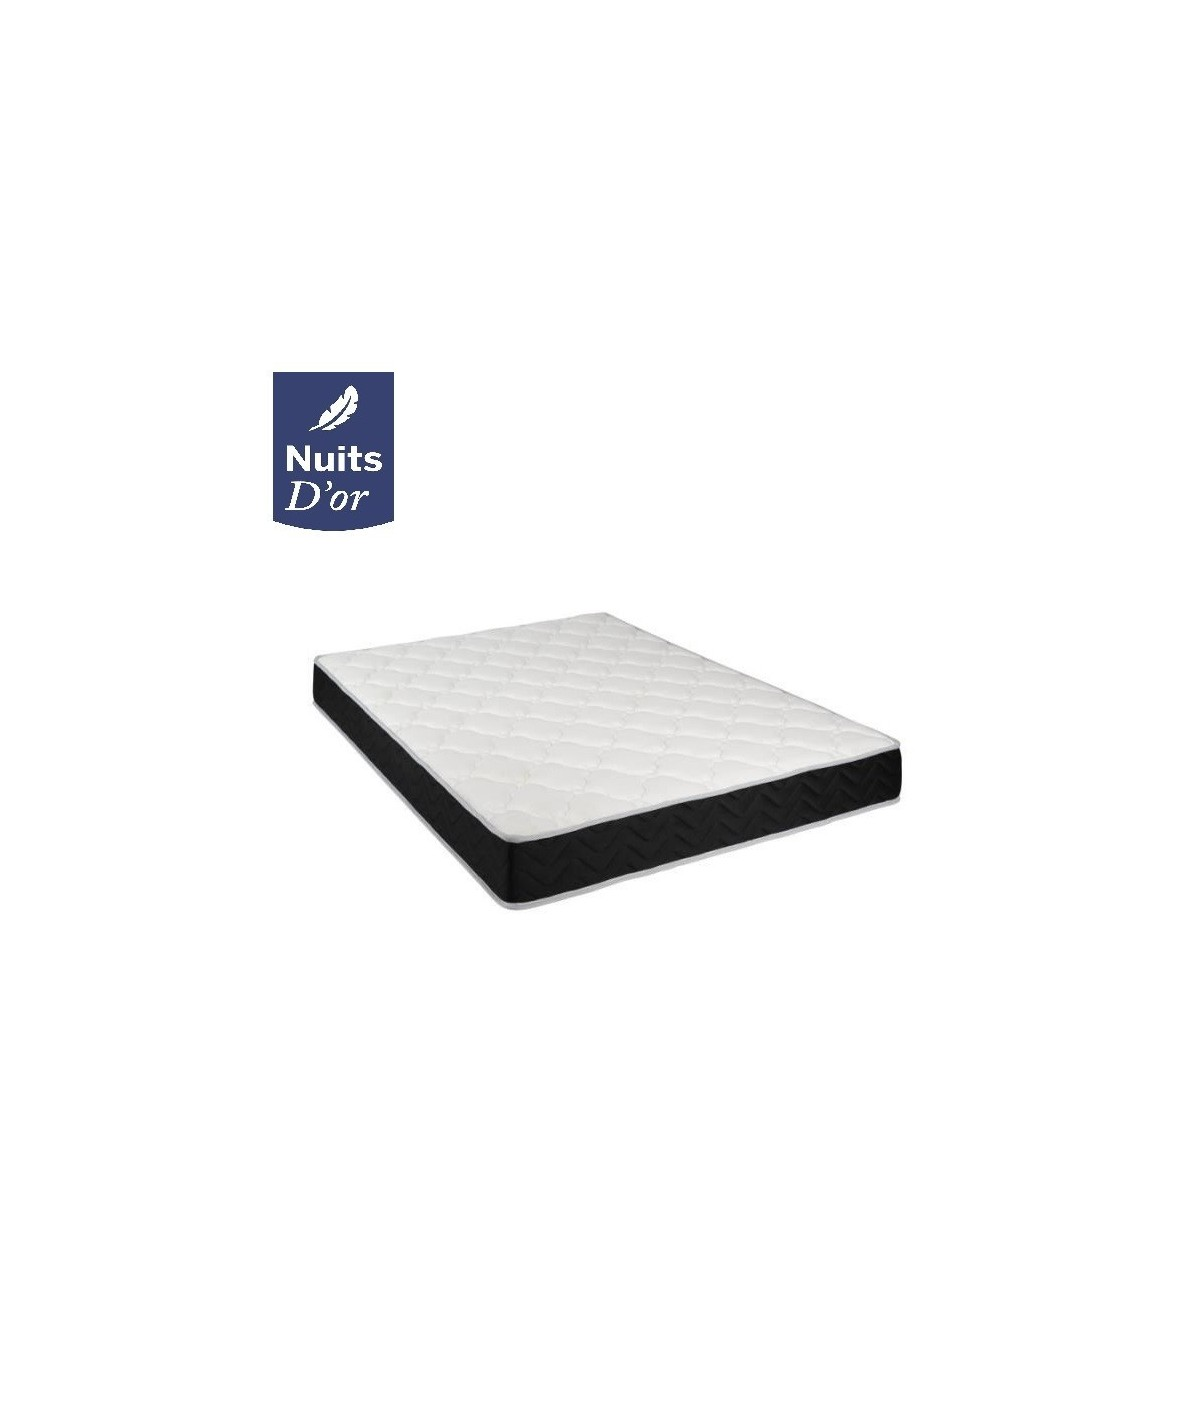 Golden Nights Mattress 70x190 Latex + Aertech - Height 20 Cm - Firm Support - Orthopedic